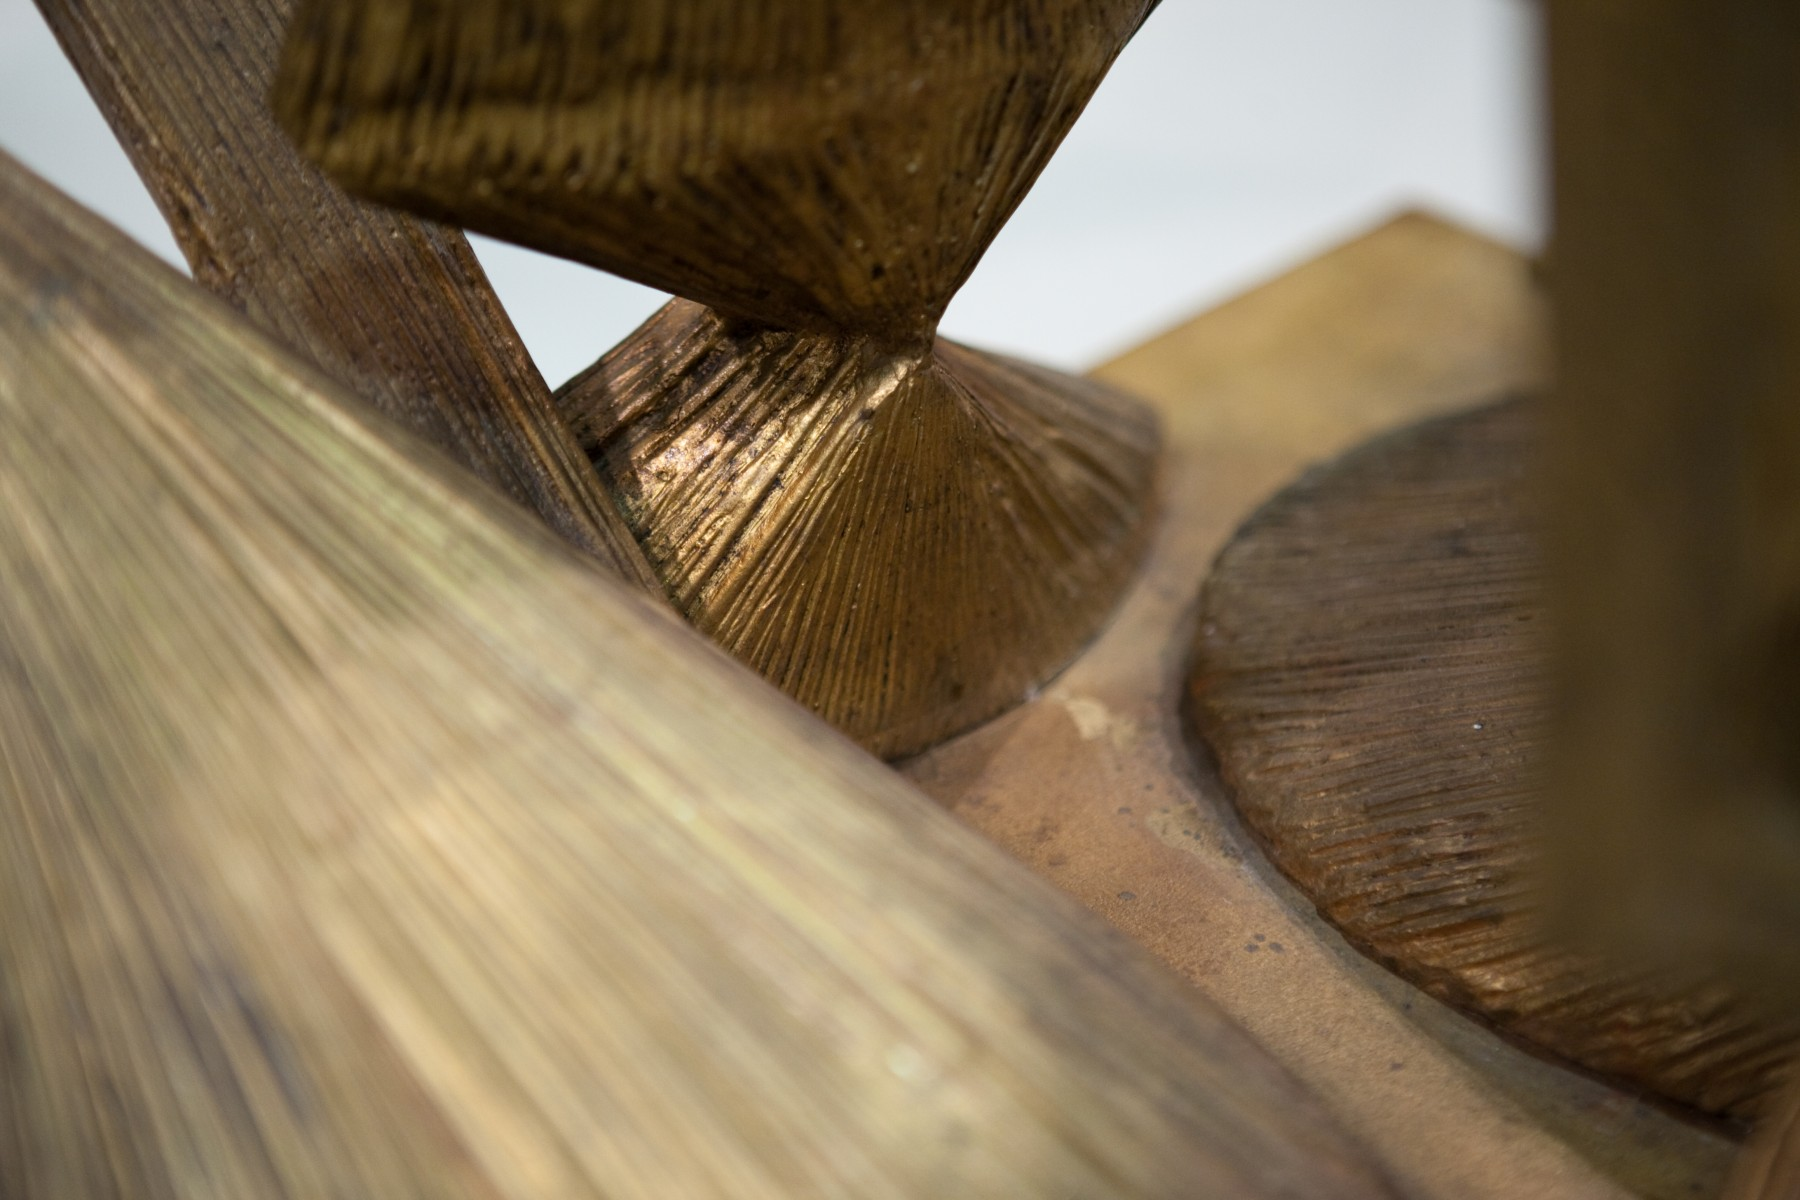 detail of textured wooden sculpture with lines going different directions